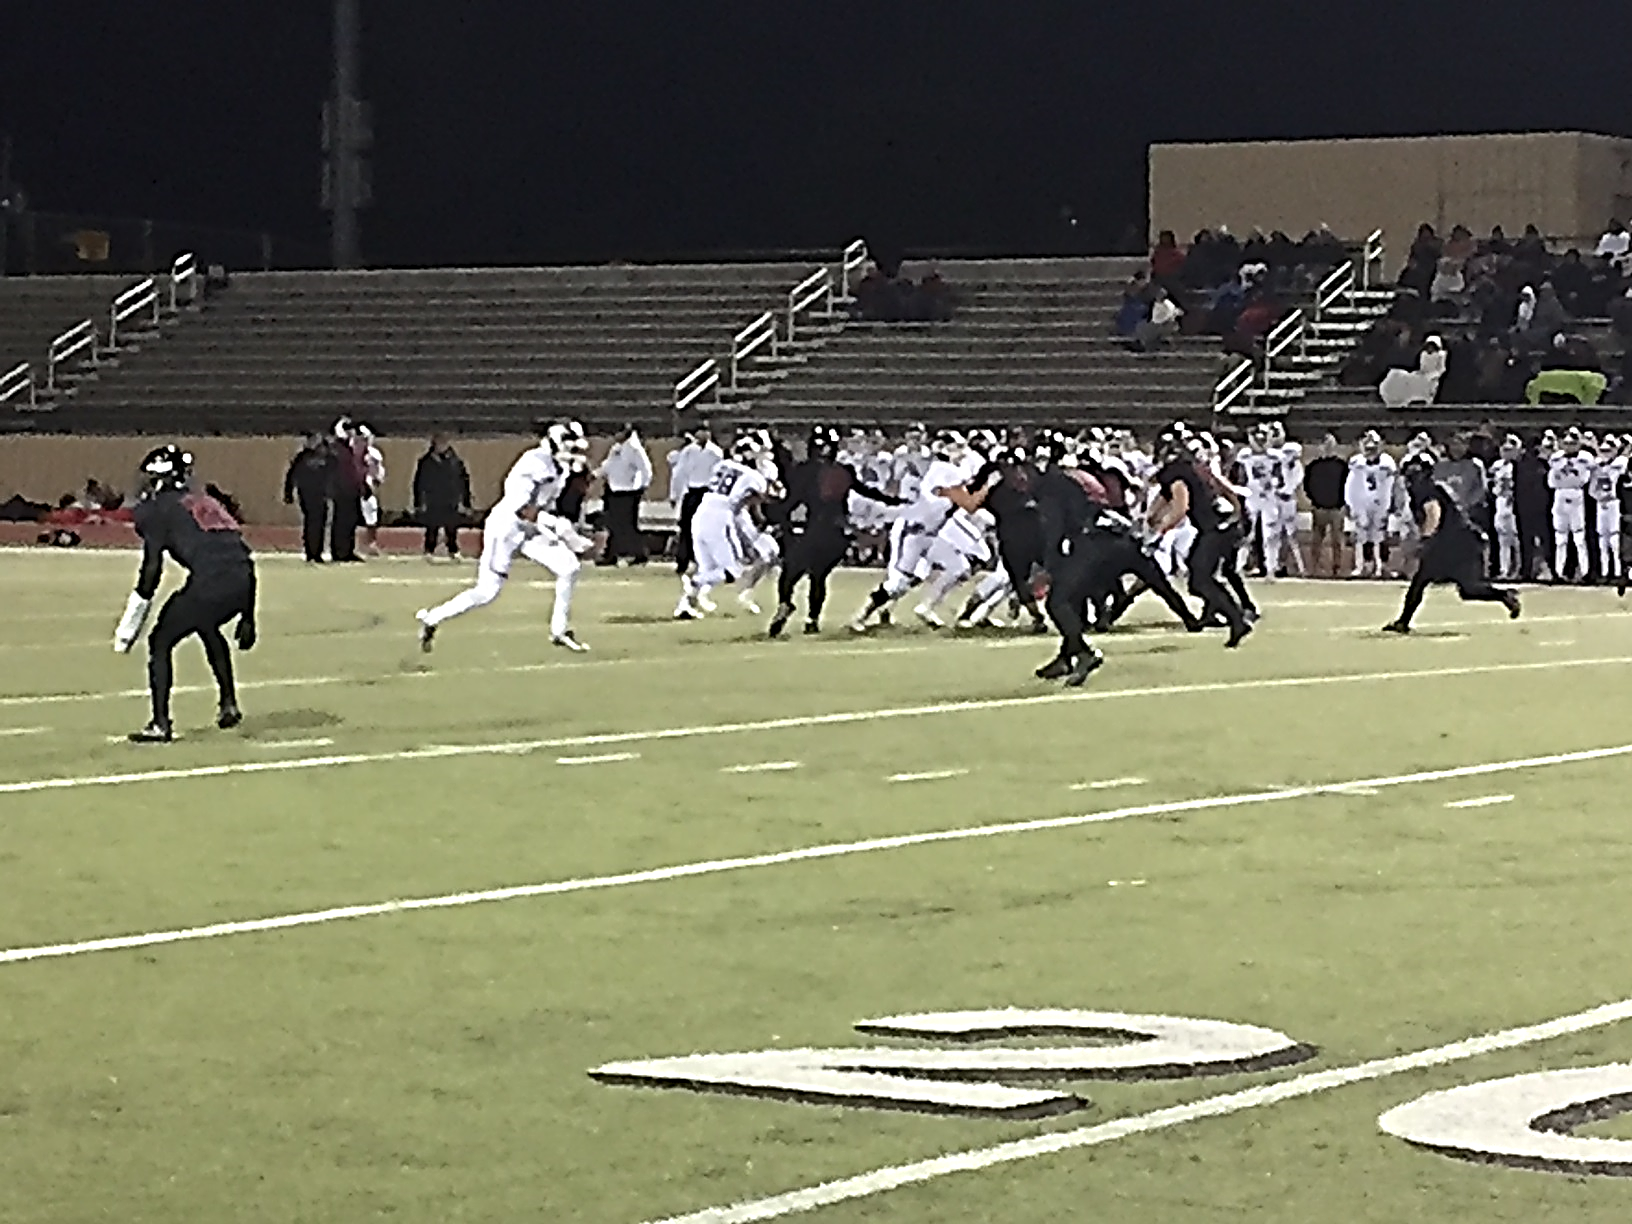 The Westmoore Jaguars face off against the Jenks Trojans during week 9 of high school football on Friday, October 27, 2017. (David Young/KOKH)<p></p>